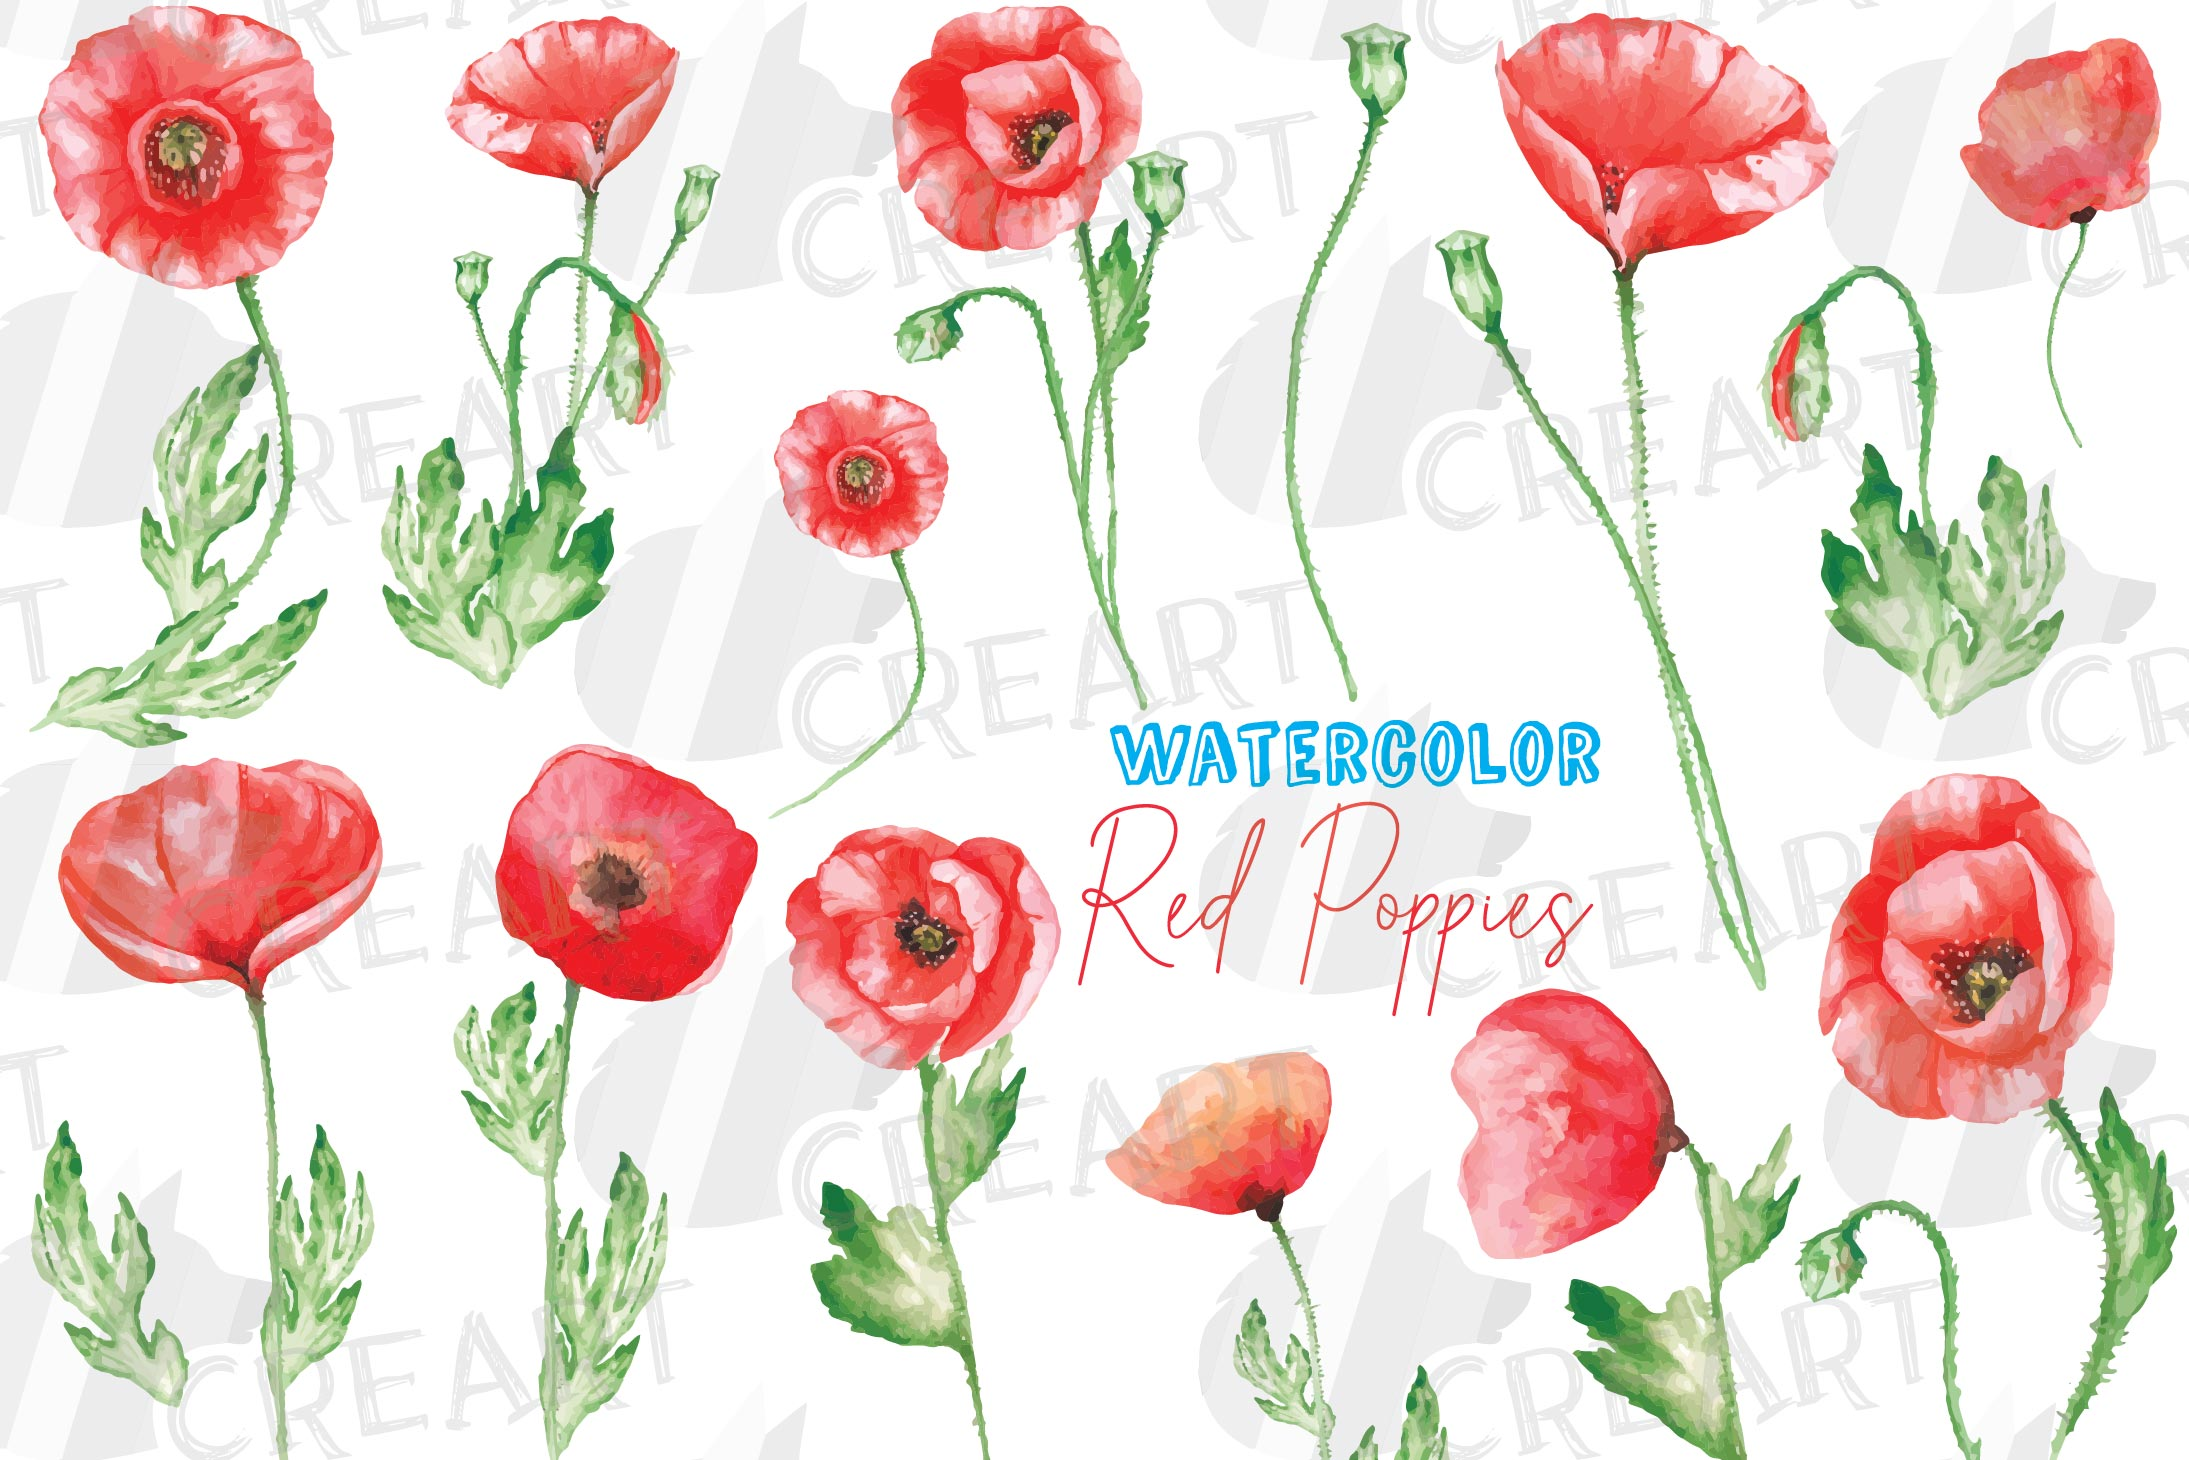 Watercolor red poppy flower and leaf decor clip art. Poppies example image 1